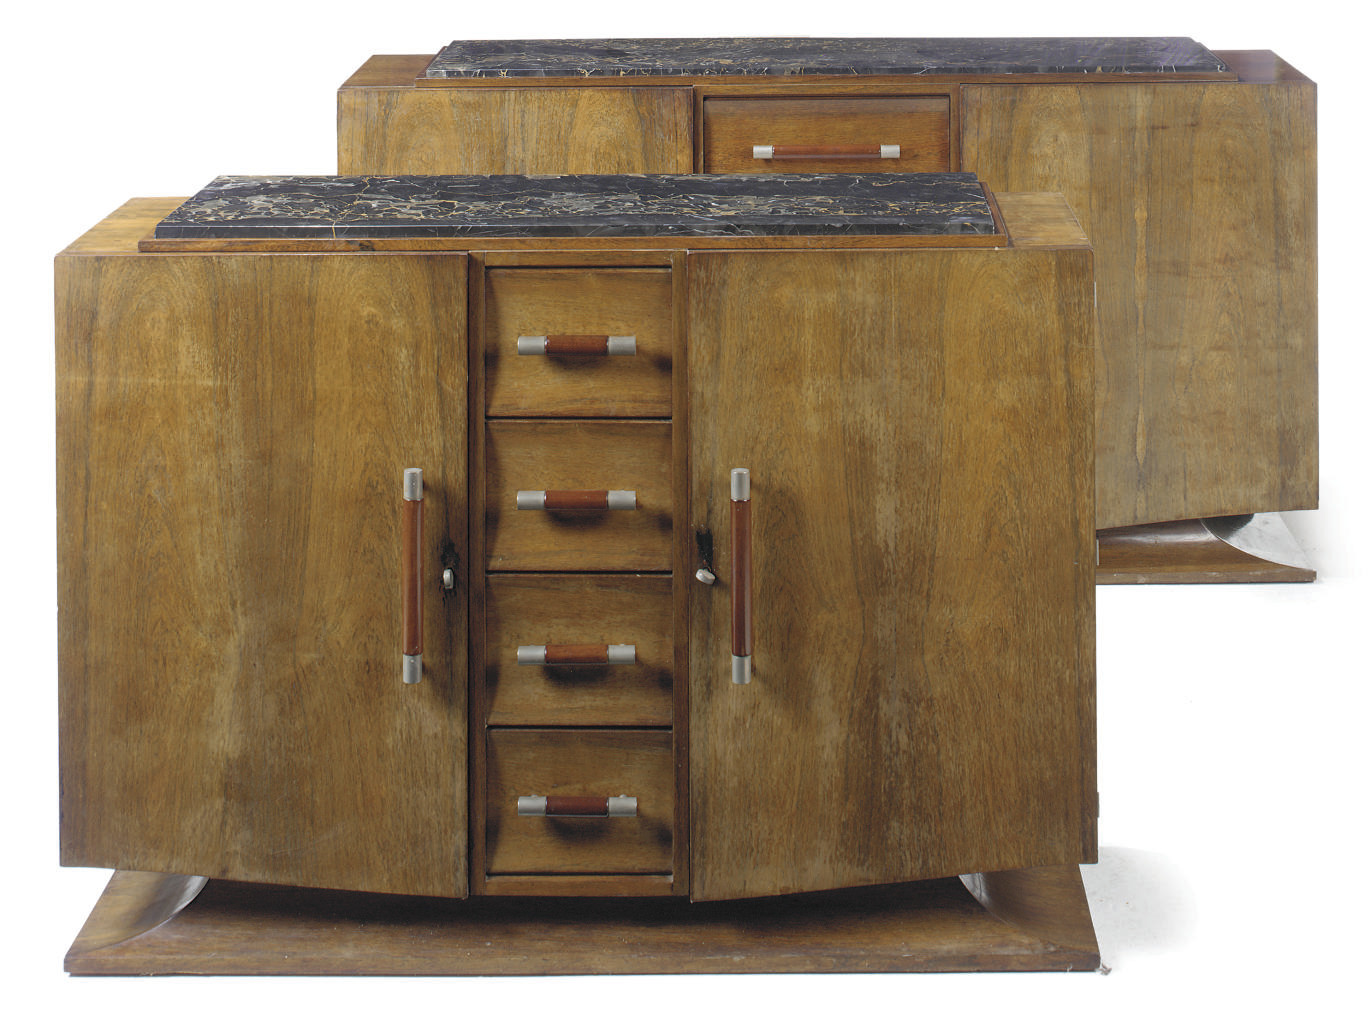 AN ART DECO MAHOGANY SIDEBOARD